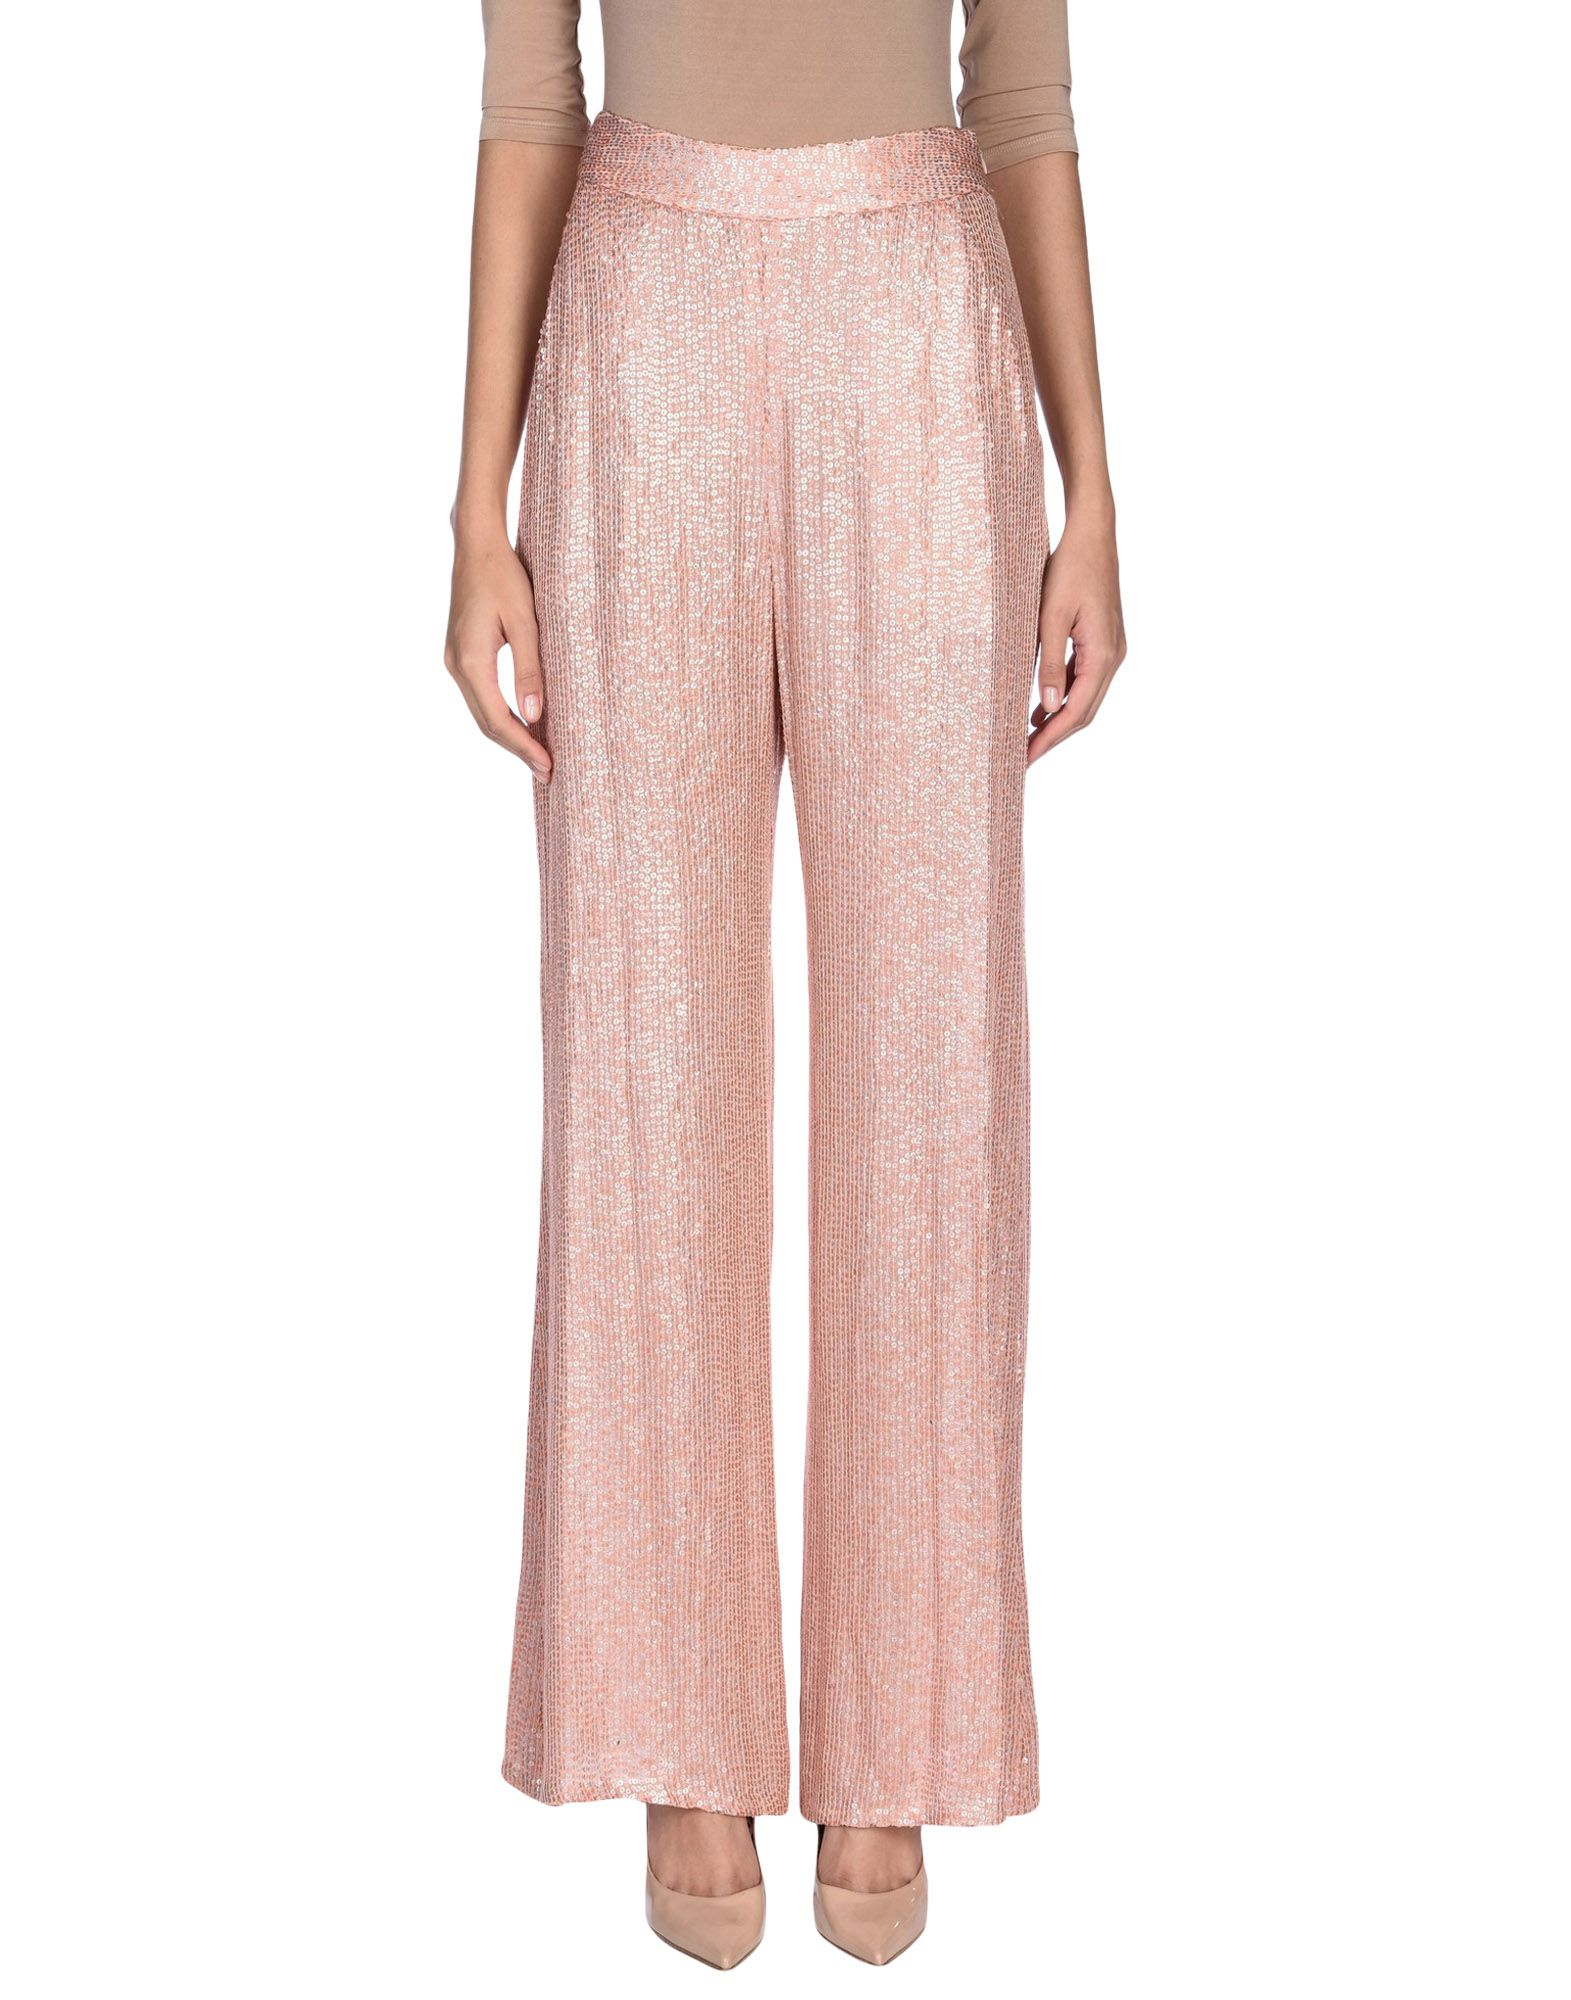 ERIN FETHERSTON Casual Pants in Pale Pink